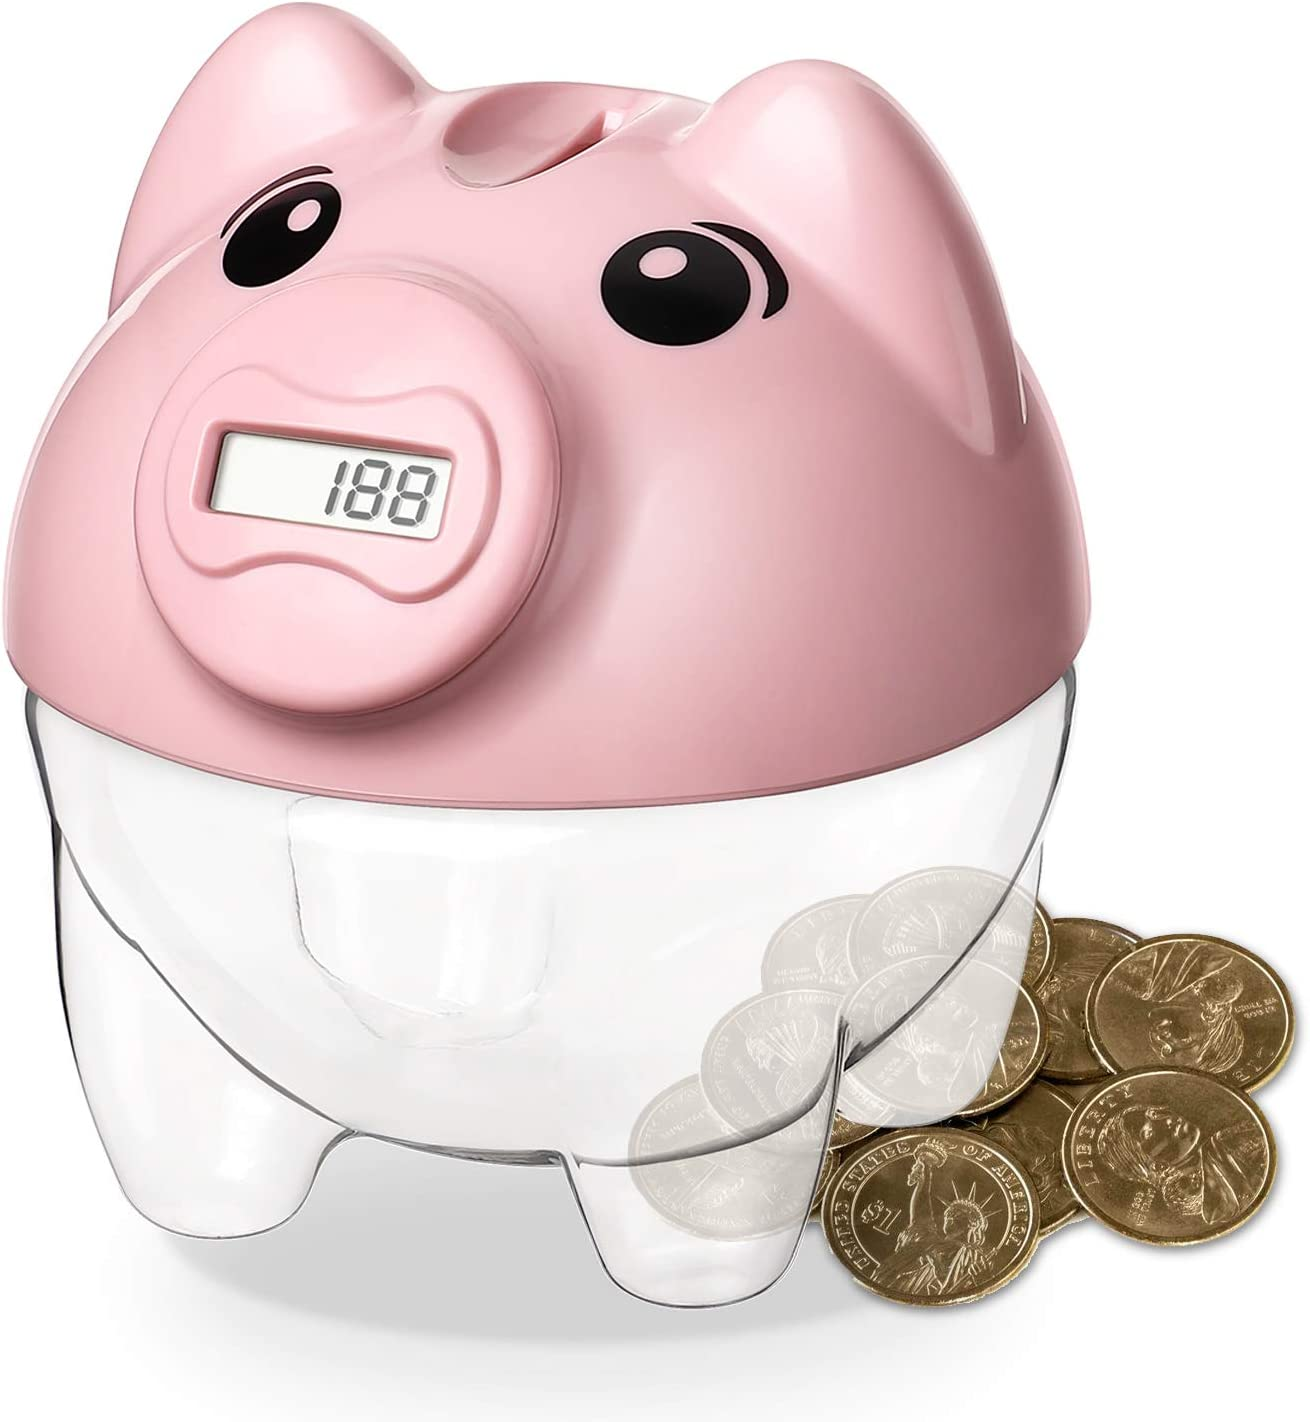 Younion Piggy Bank for Kids, Digital Counting Coin Bank